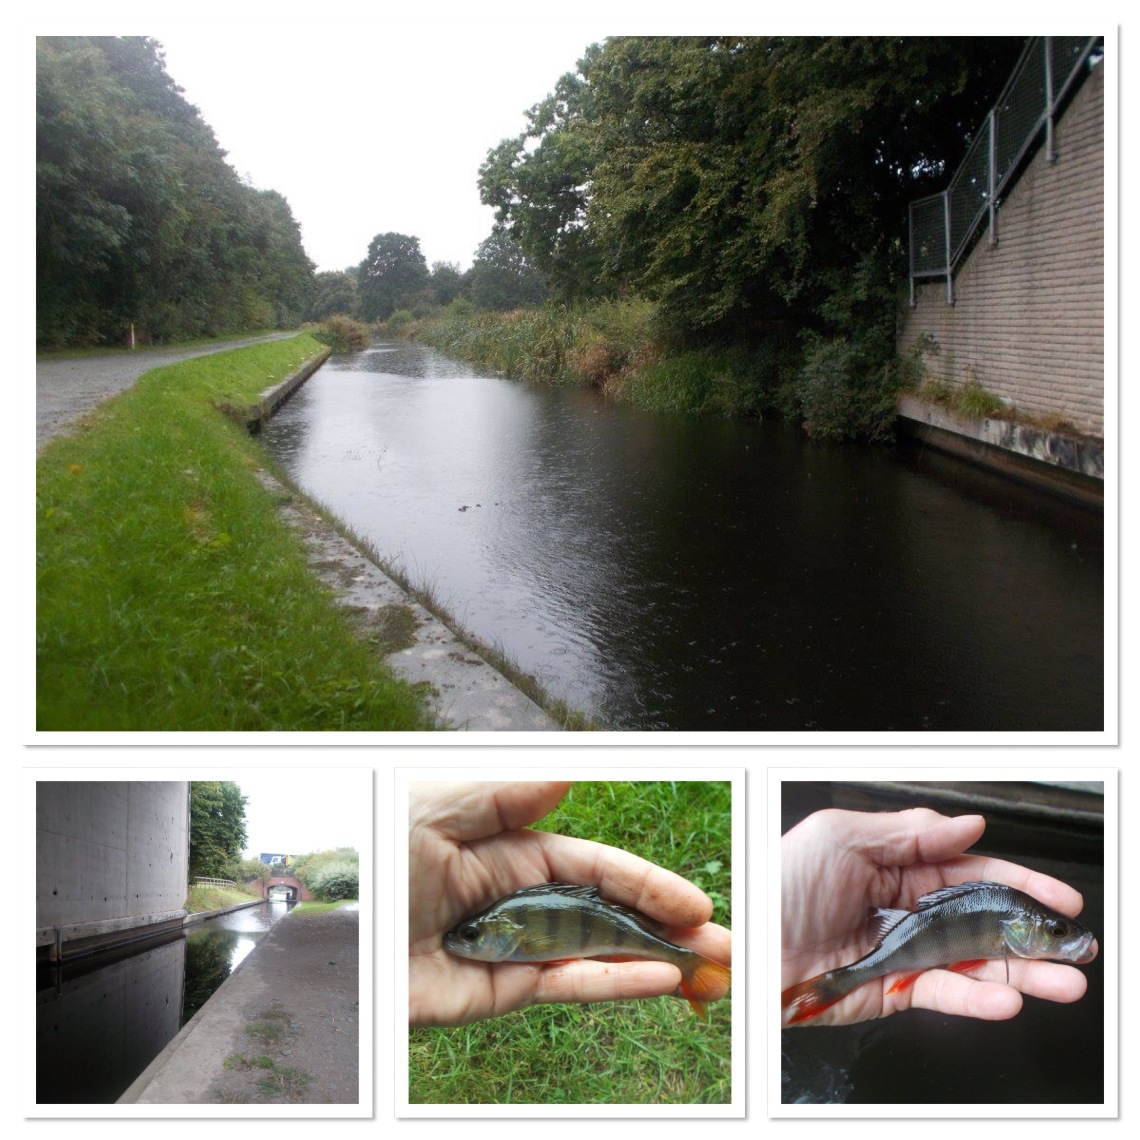 Montgomery Canal and some of its residents